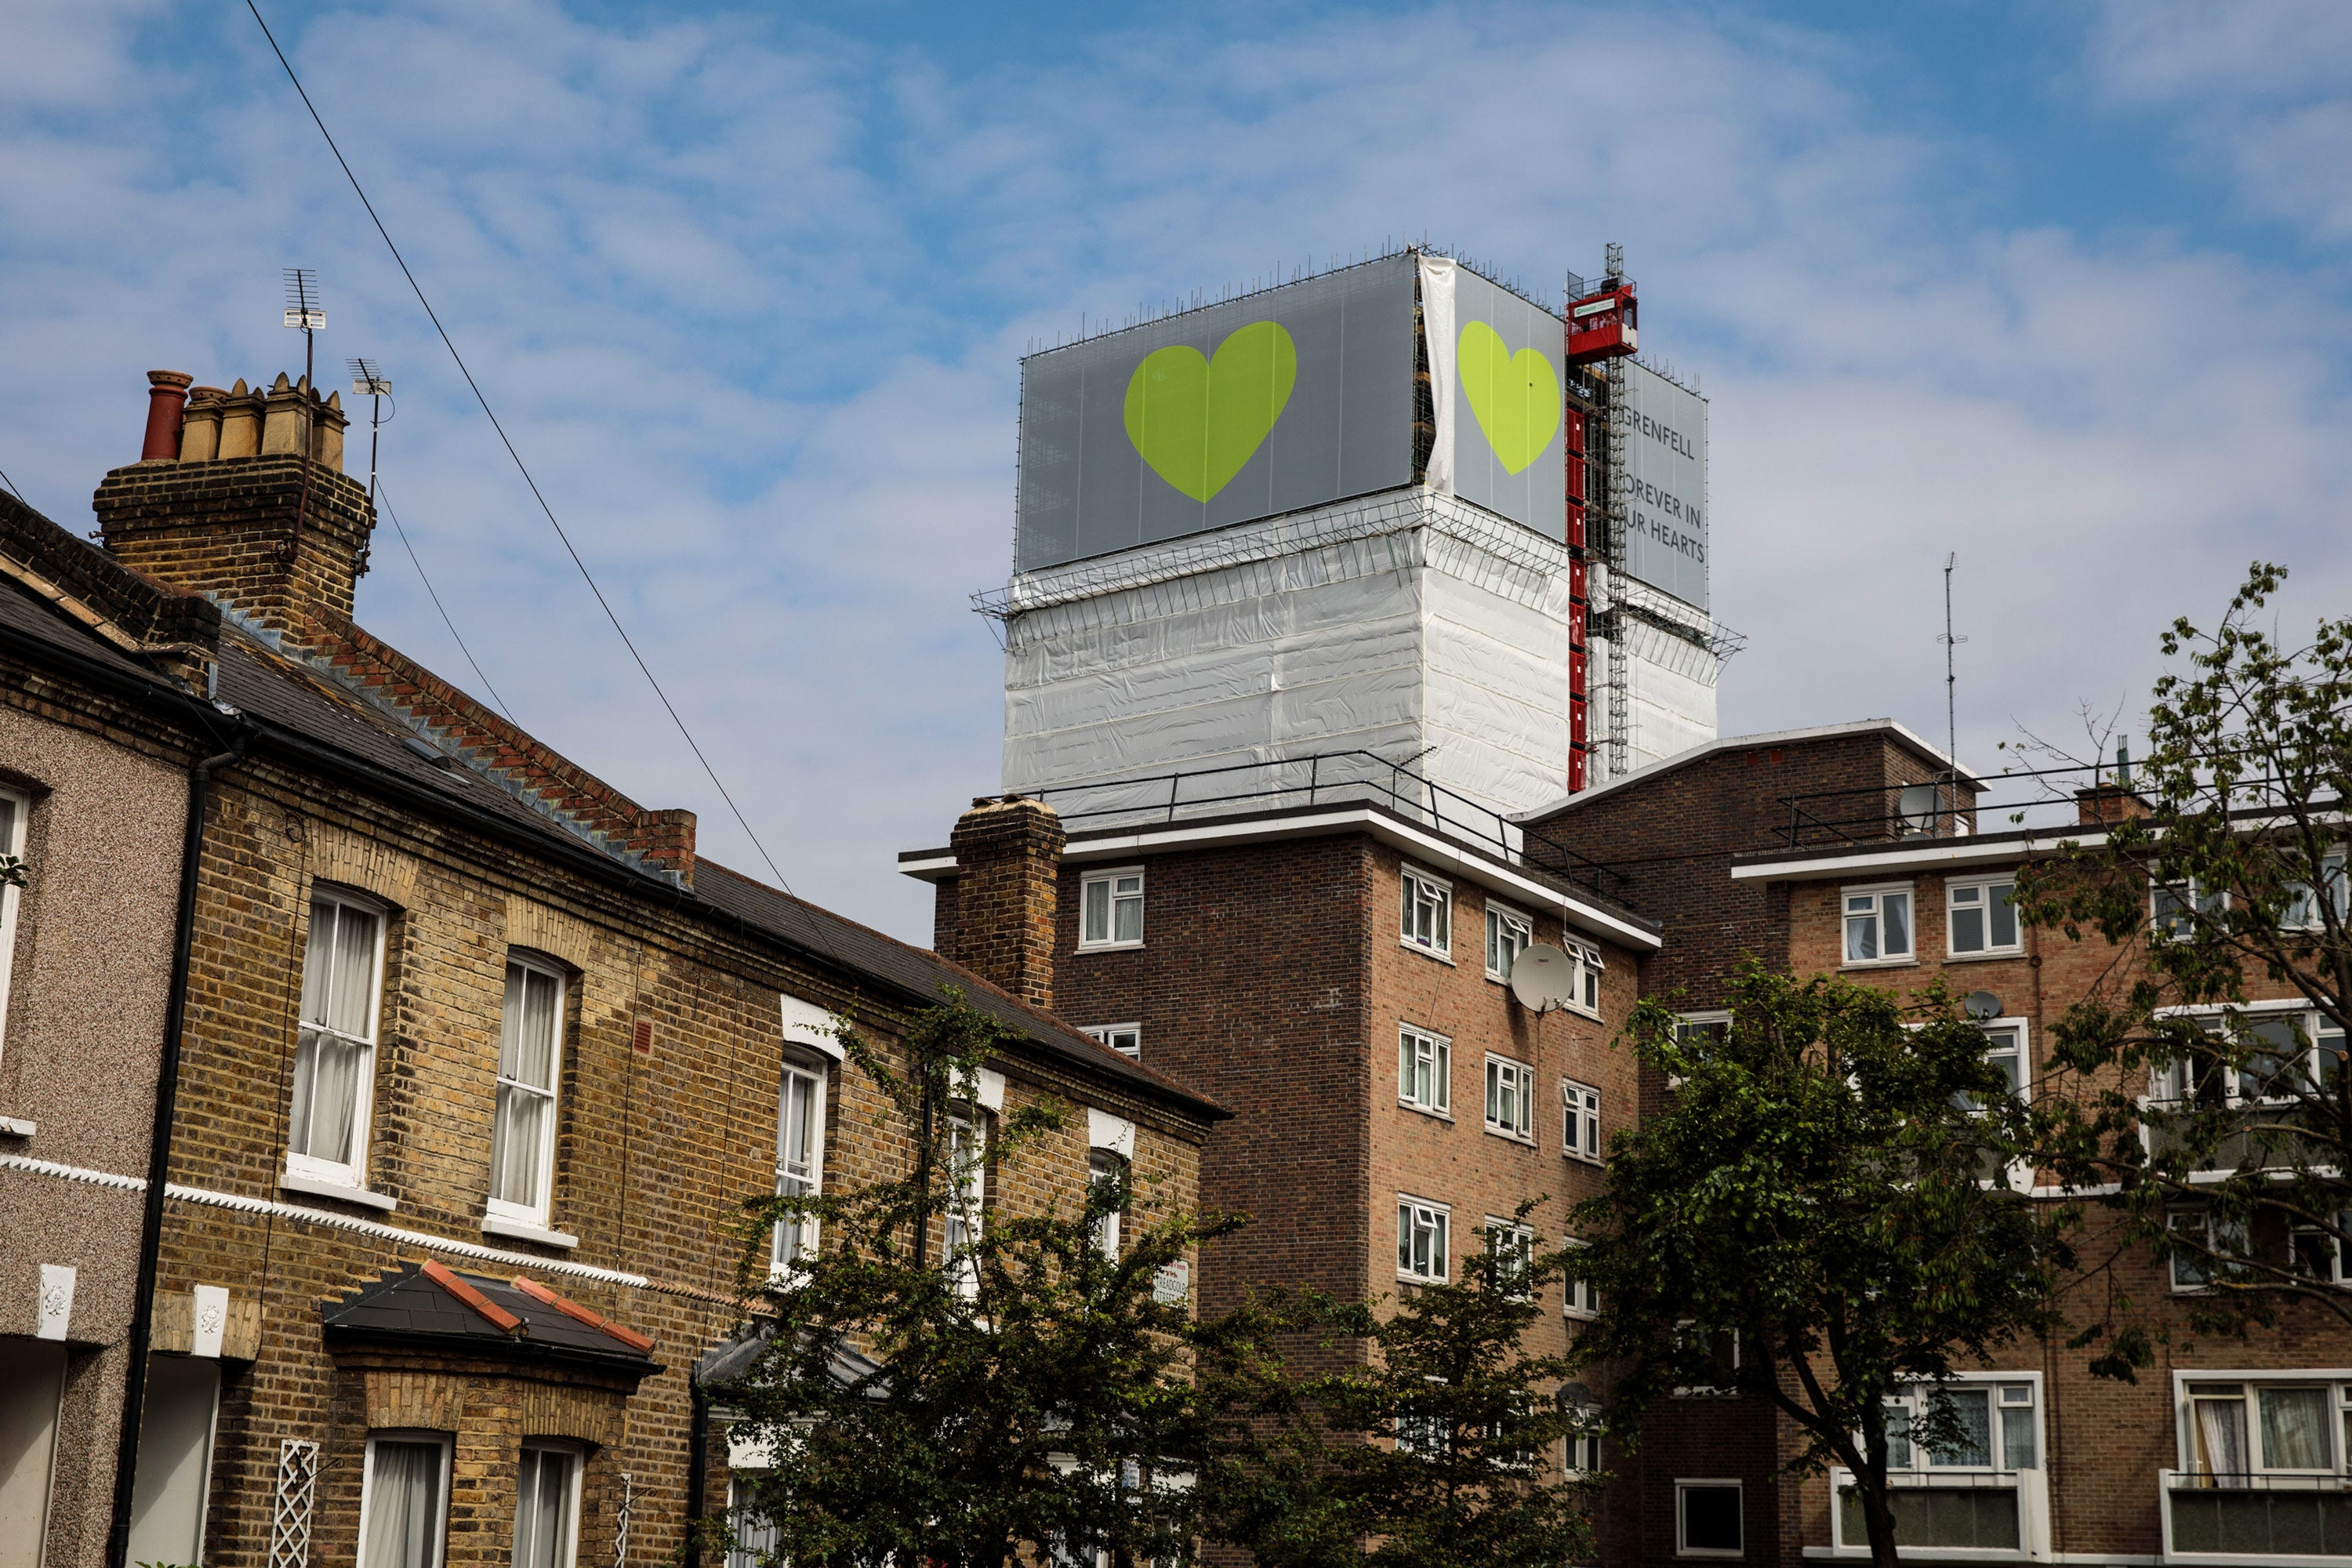 This Is What It's Like To Live In The Shadow Of Grenfell Tower